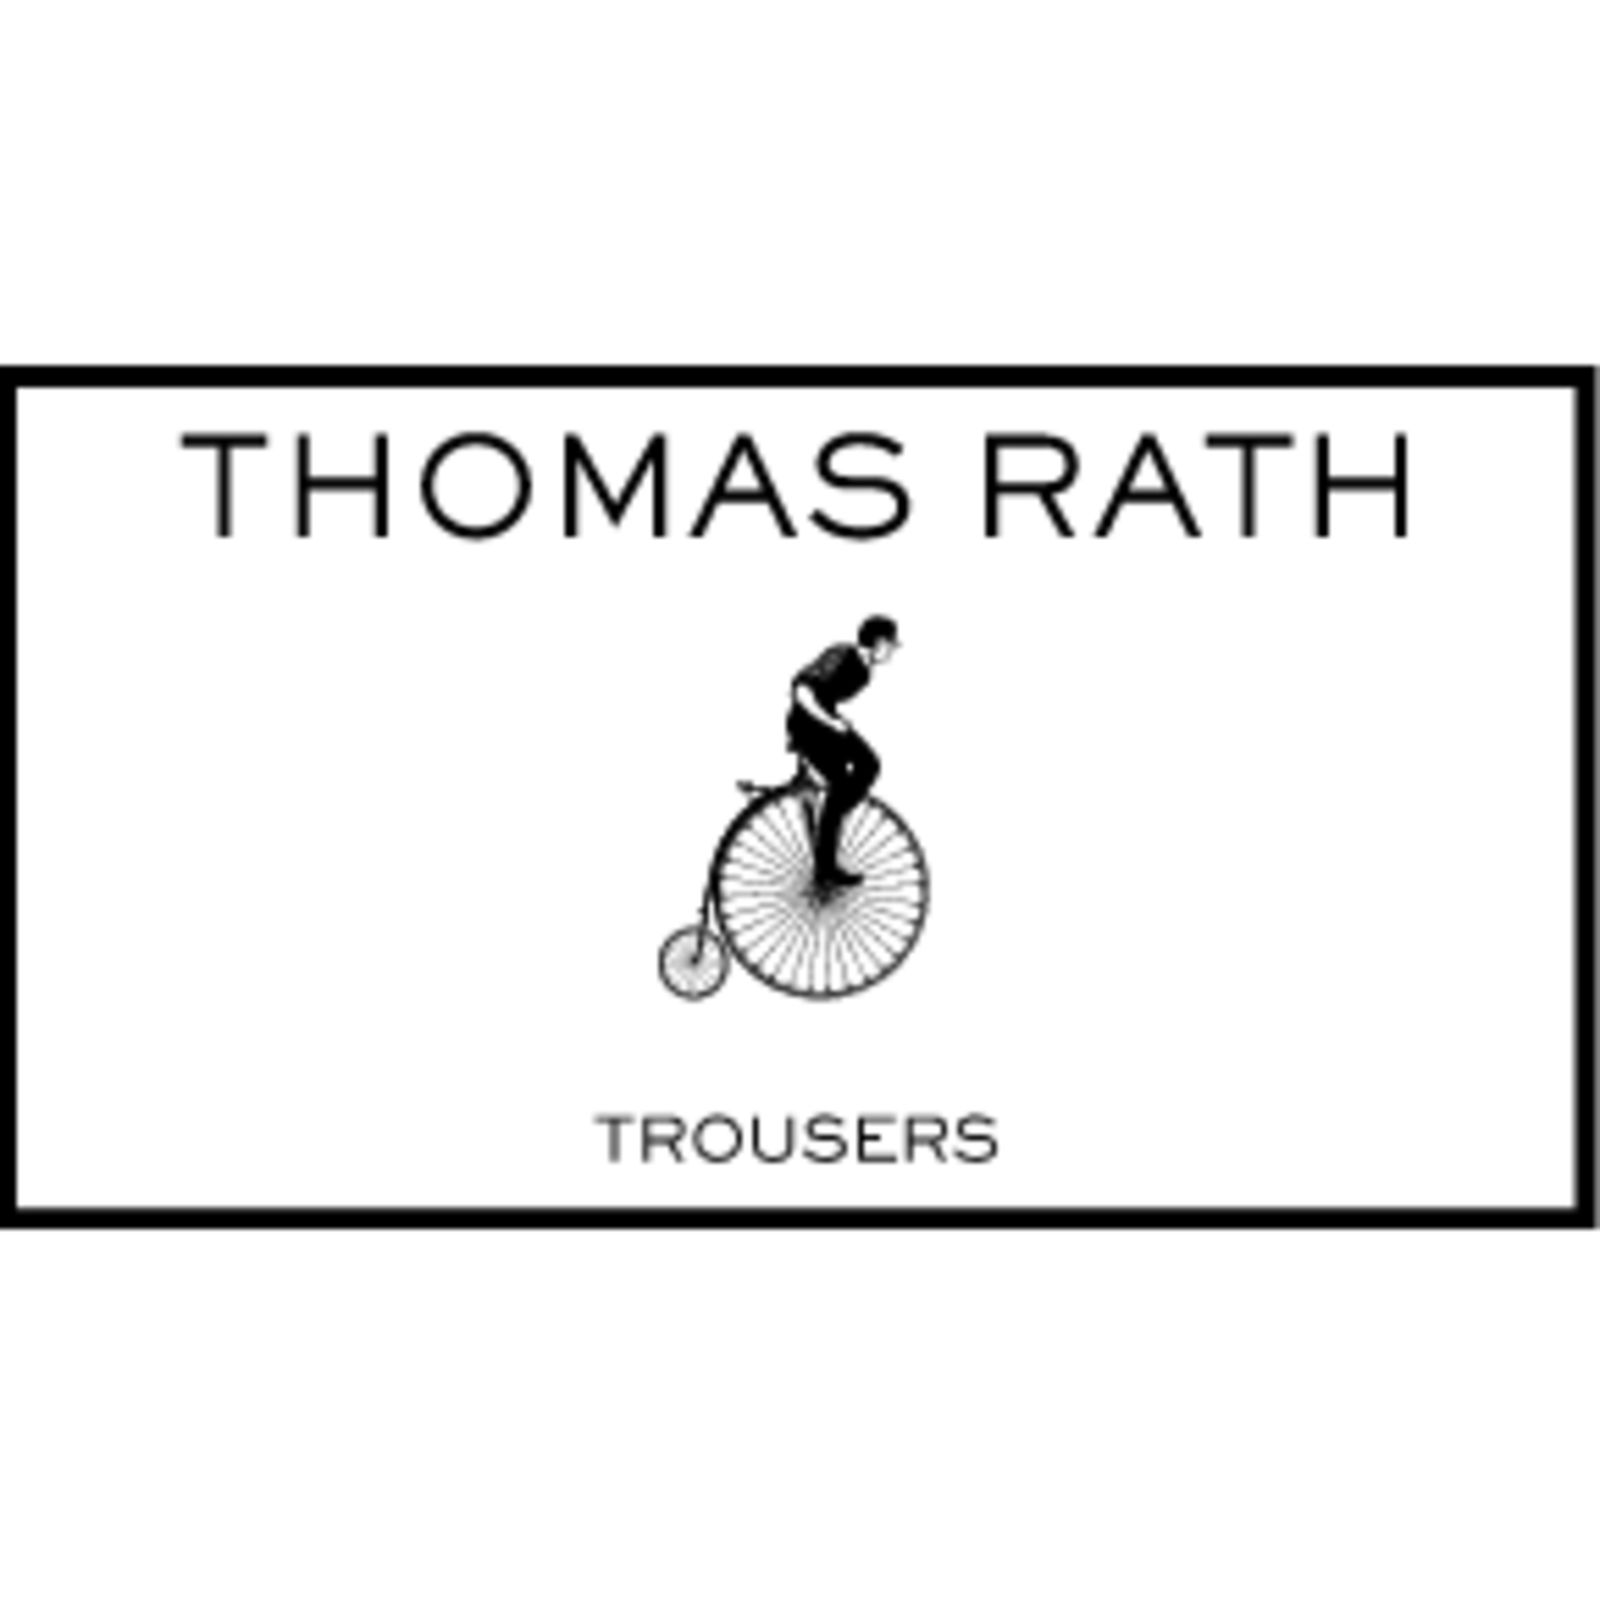 Thomas Rath Trousers by Gardeur